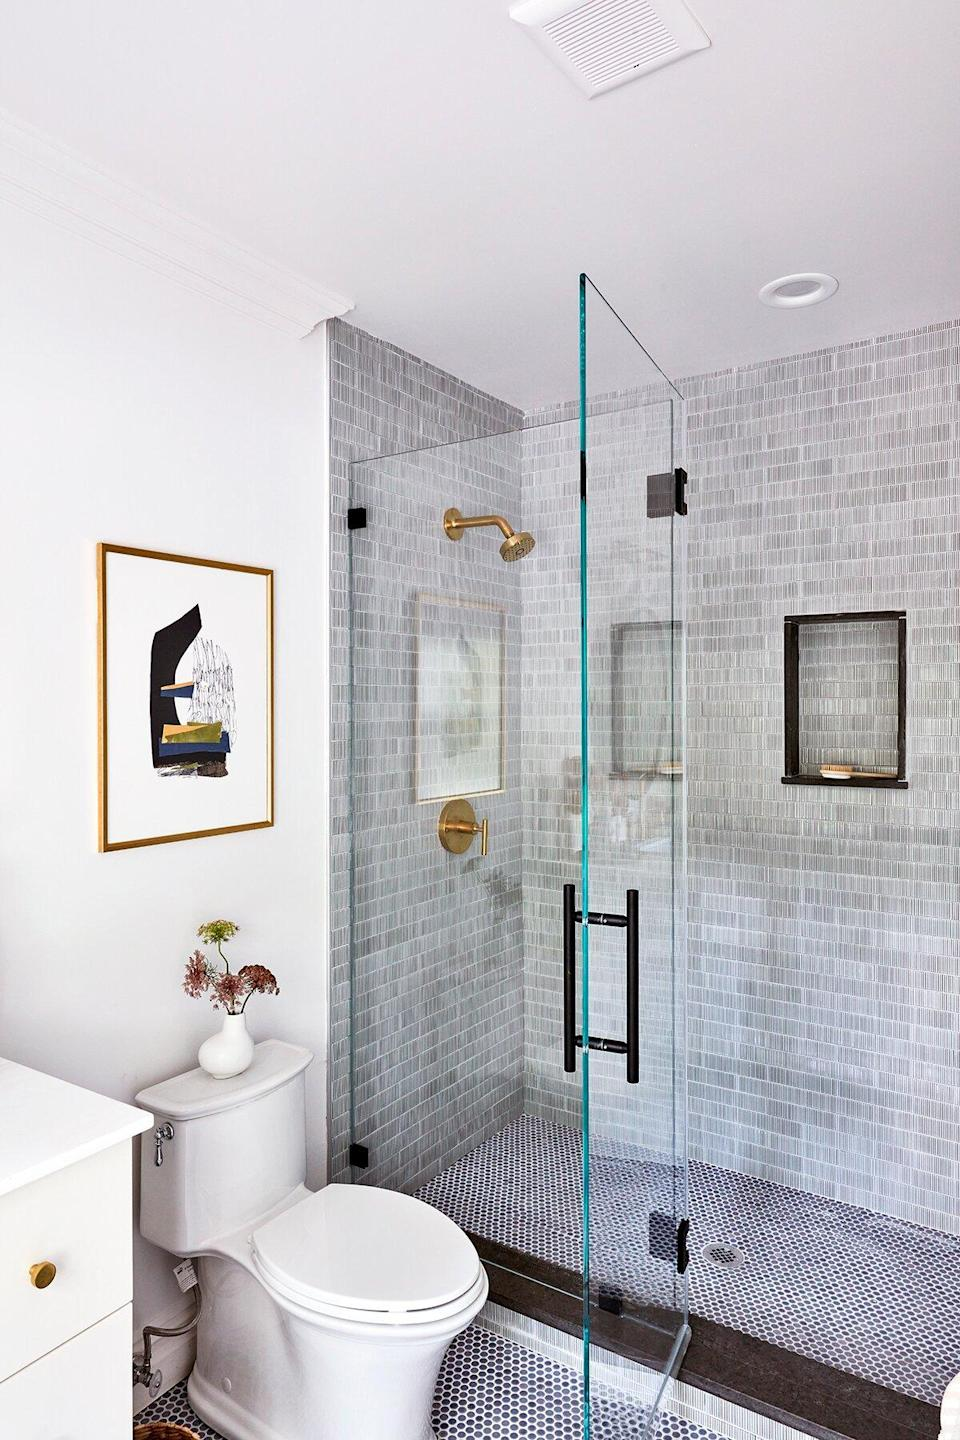 Real Simple Reveals 2021 Idea House with Rooms Designed by Emily Henderson, Delia Kenza and More!